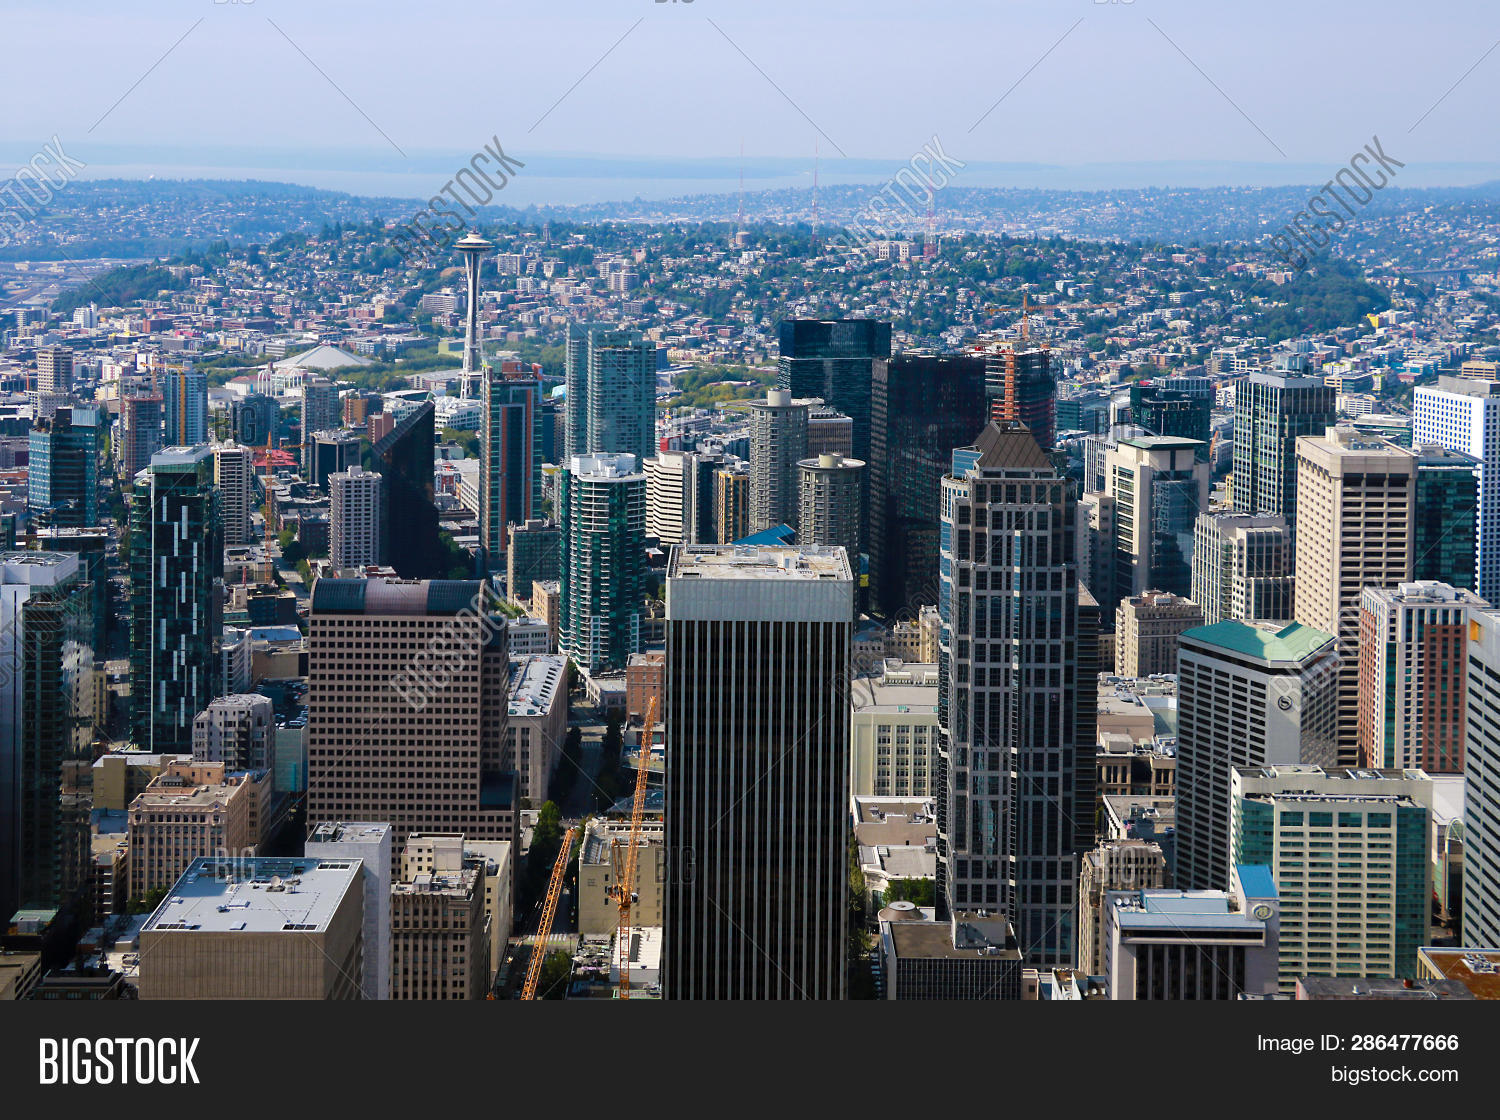 Seattle Usa August Image & Photo (Free Trial) | Bigstock